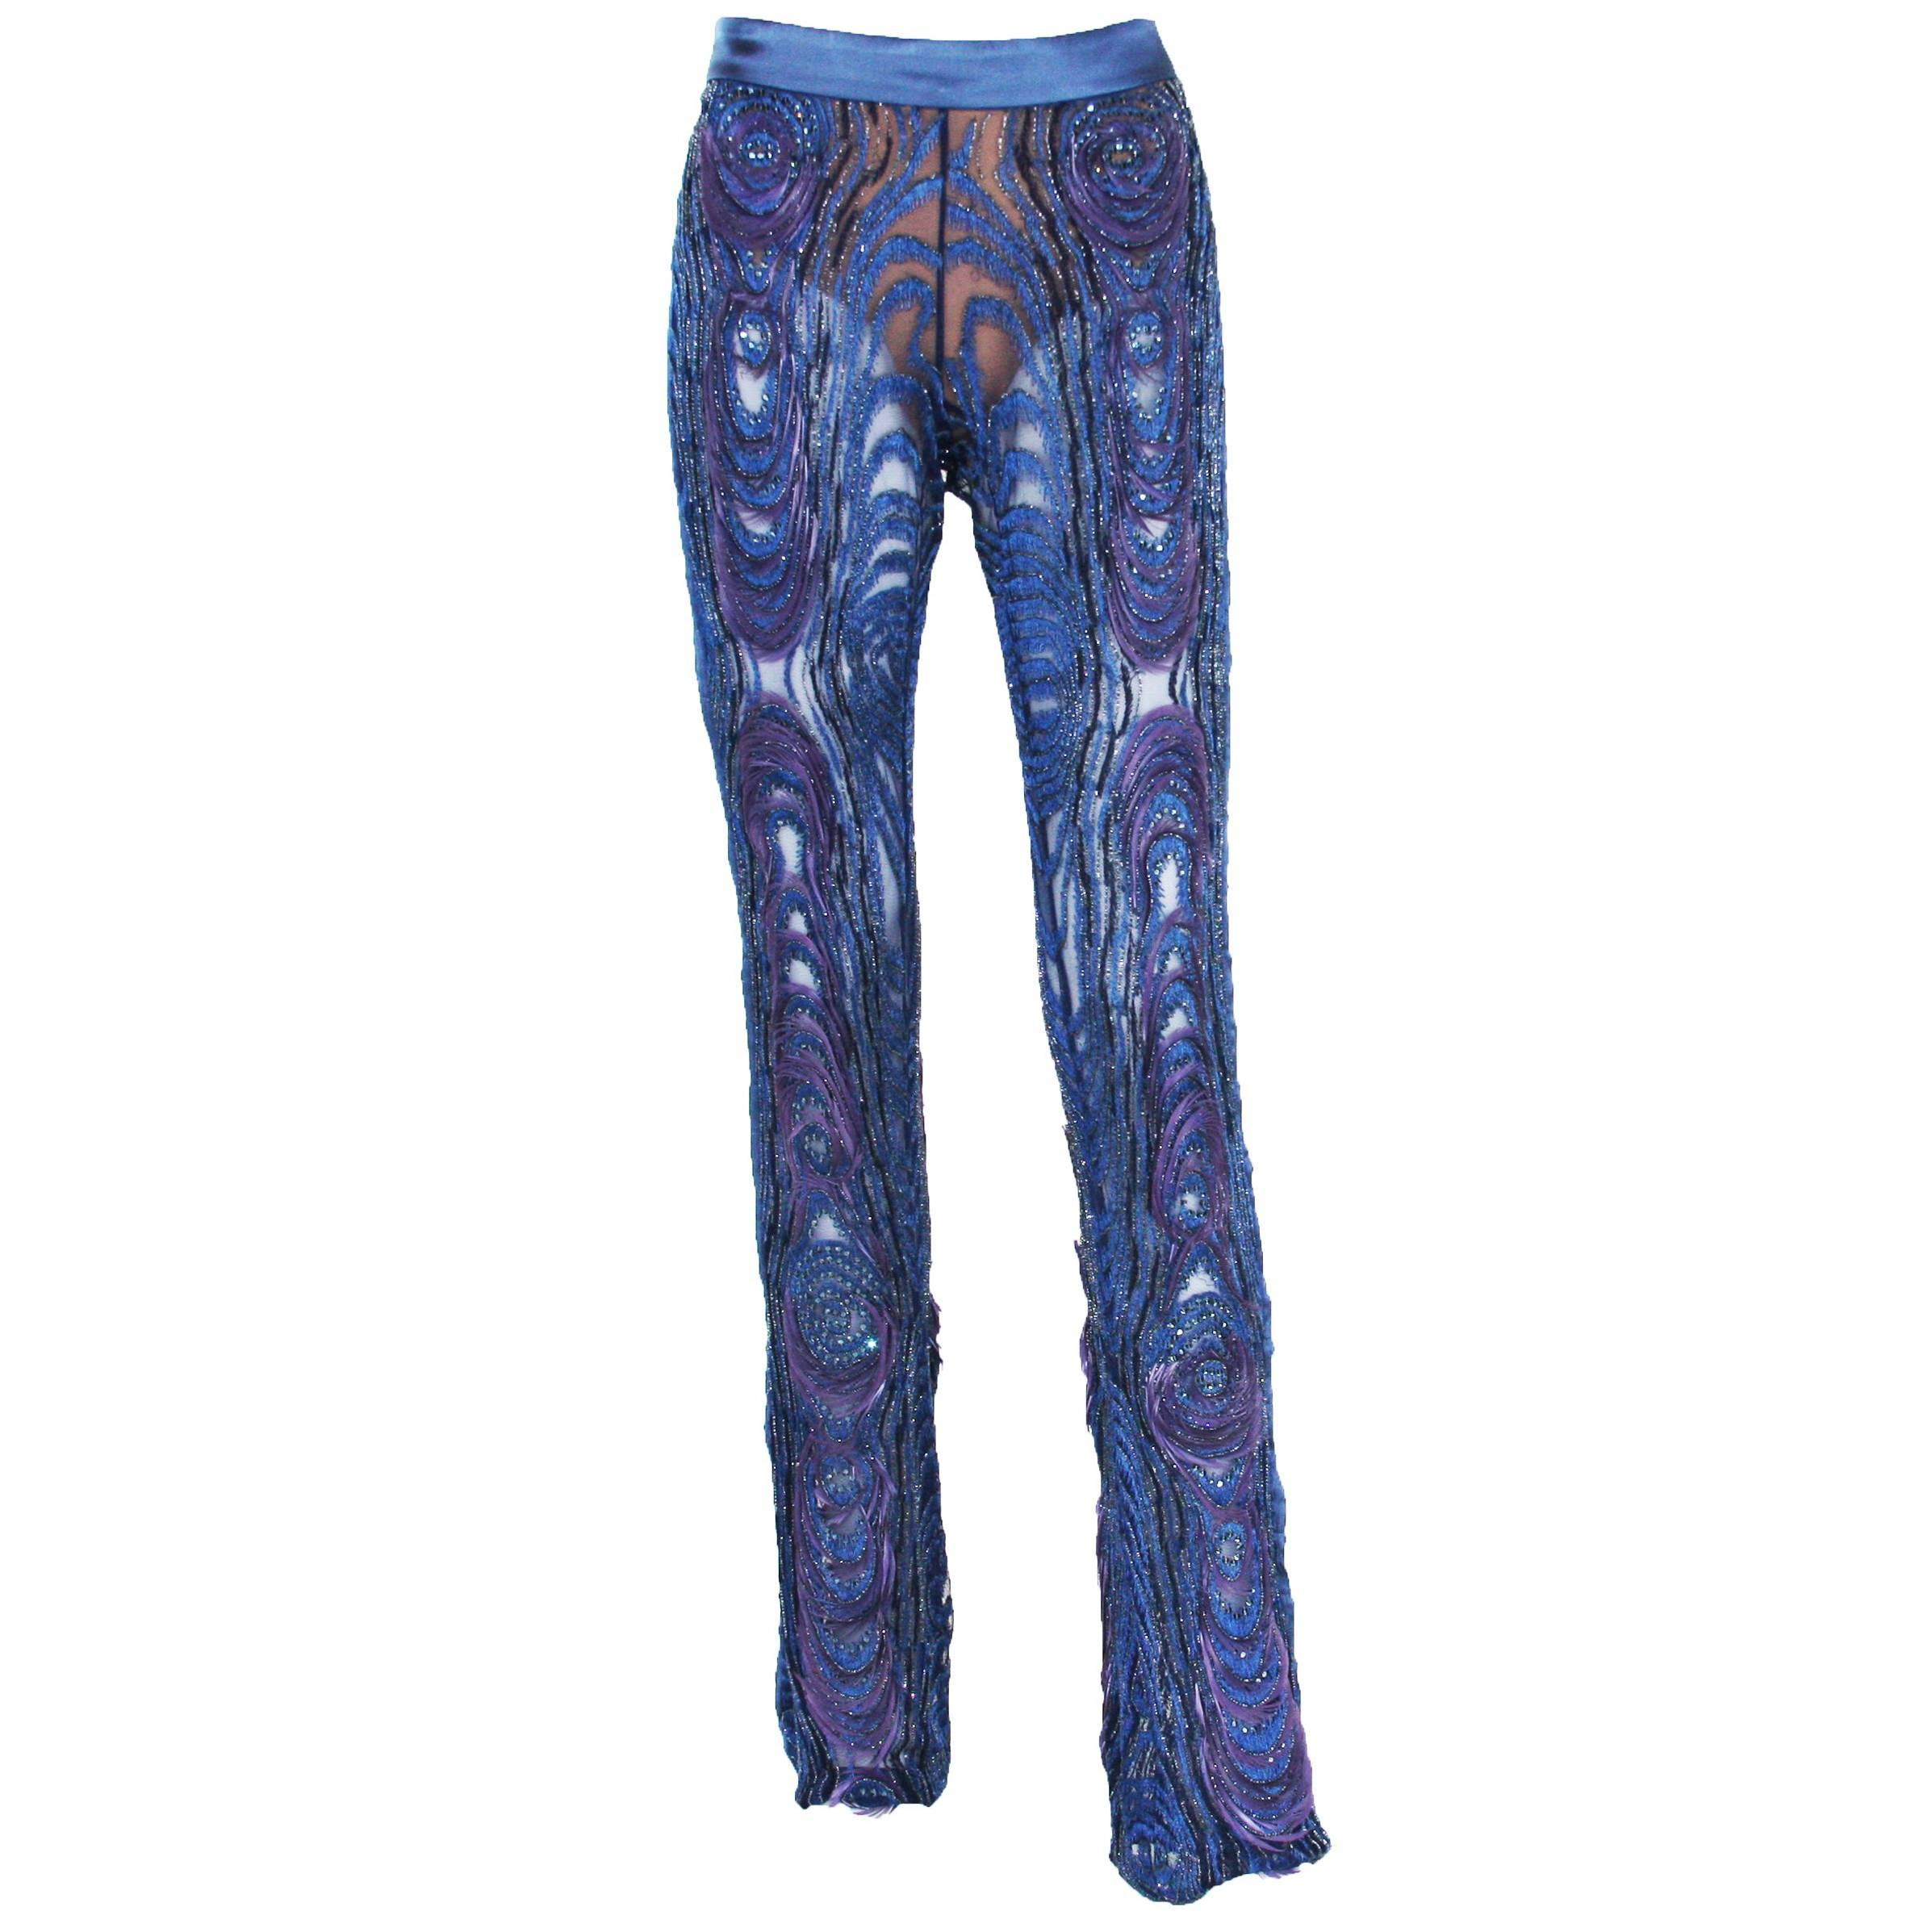 5938c2512029 Tom Ford for Gucci embellished lace pants at 1stdibs